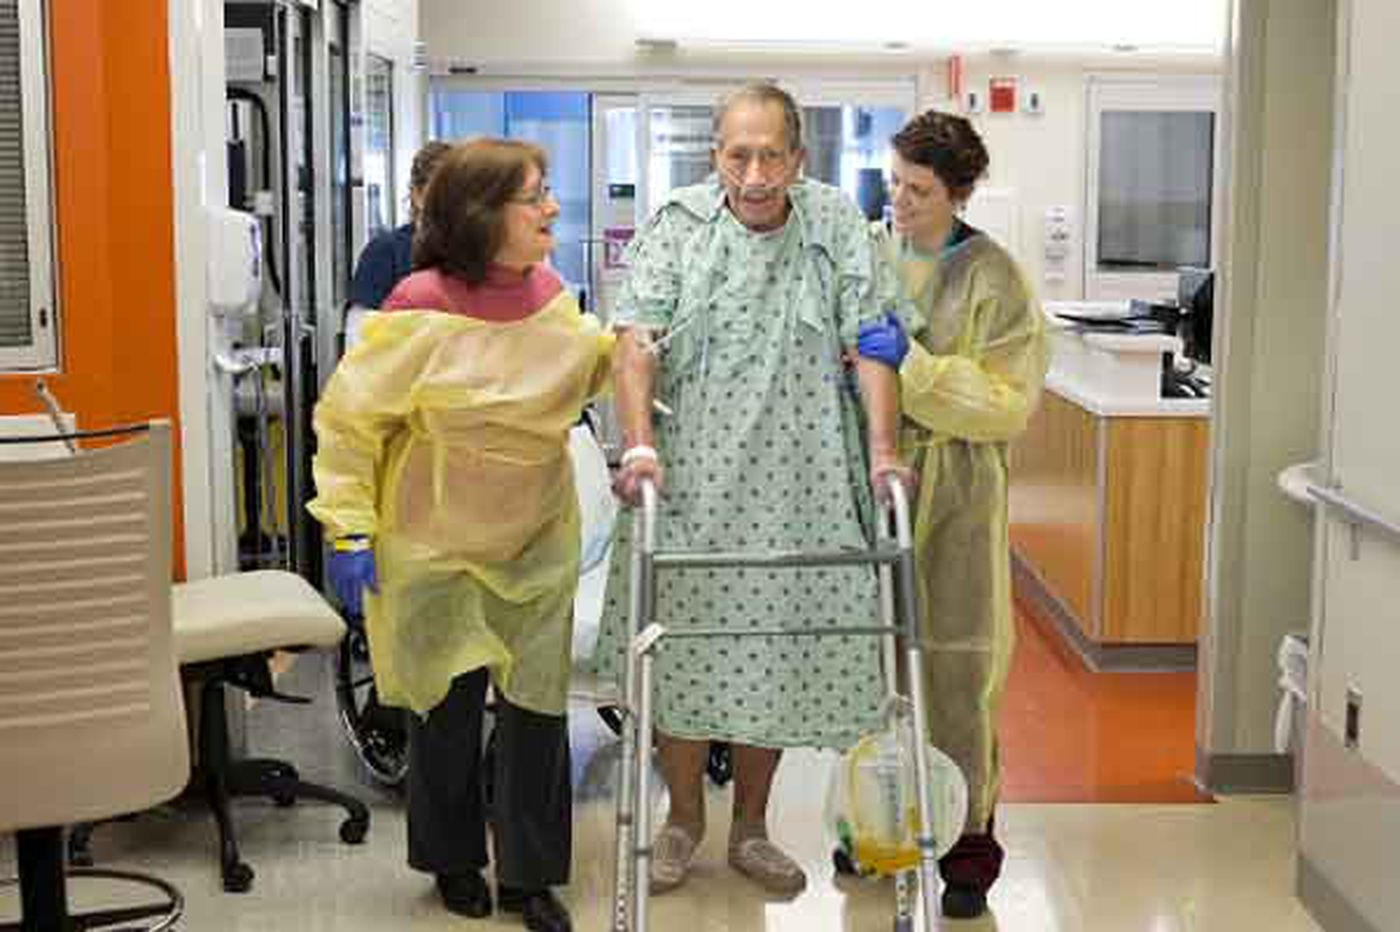 A new frontier in ICU research: Postintensive care syndrome